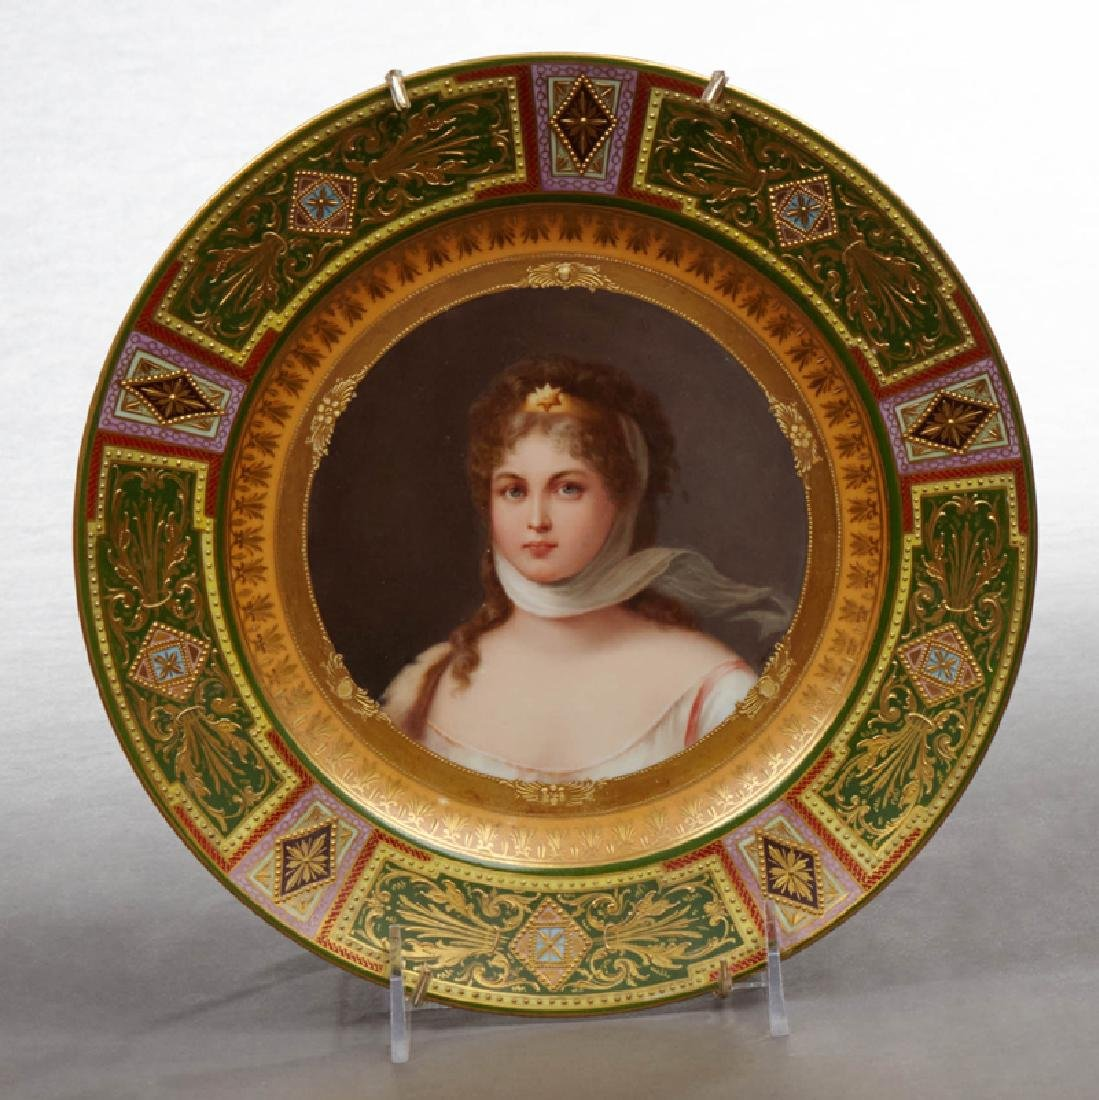 Royal Vienna Porcelain Portrait Plate, 19th c., of